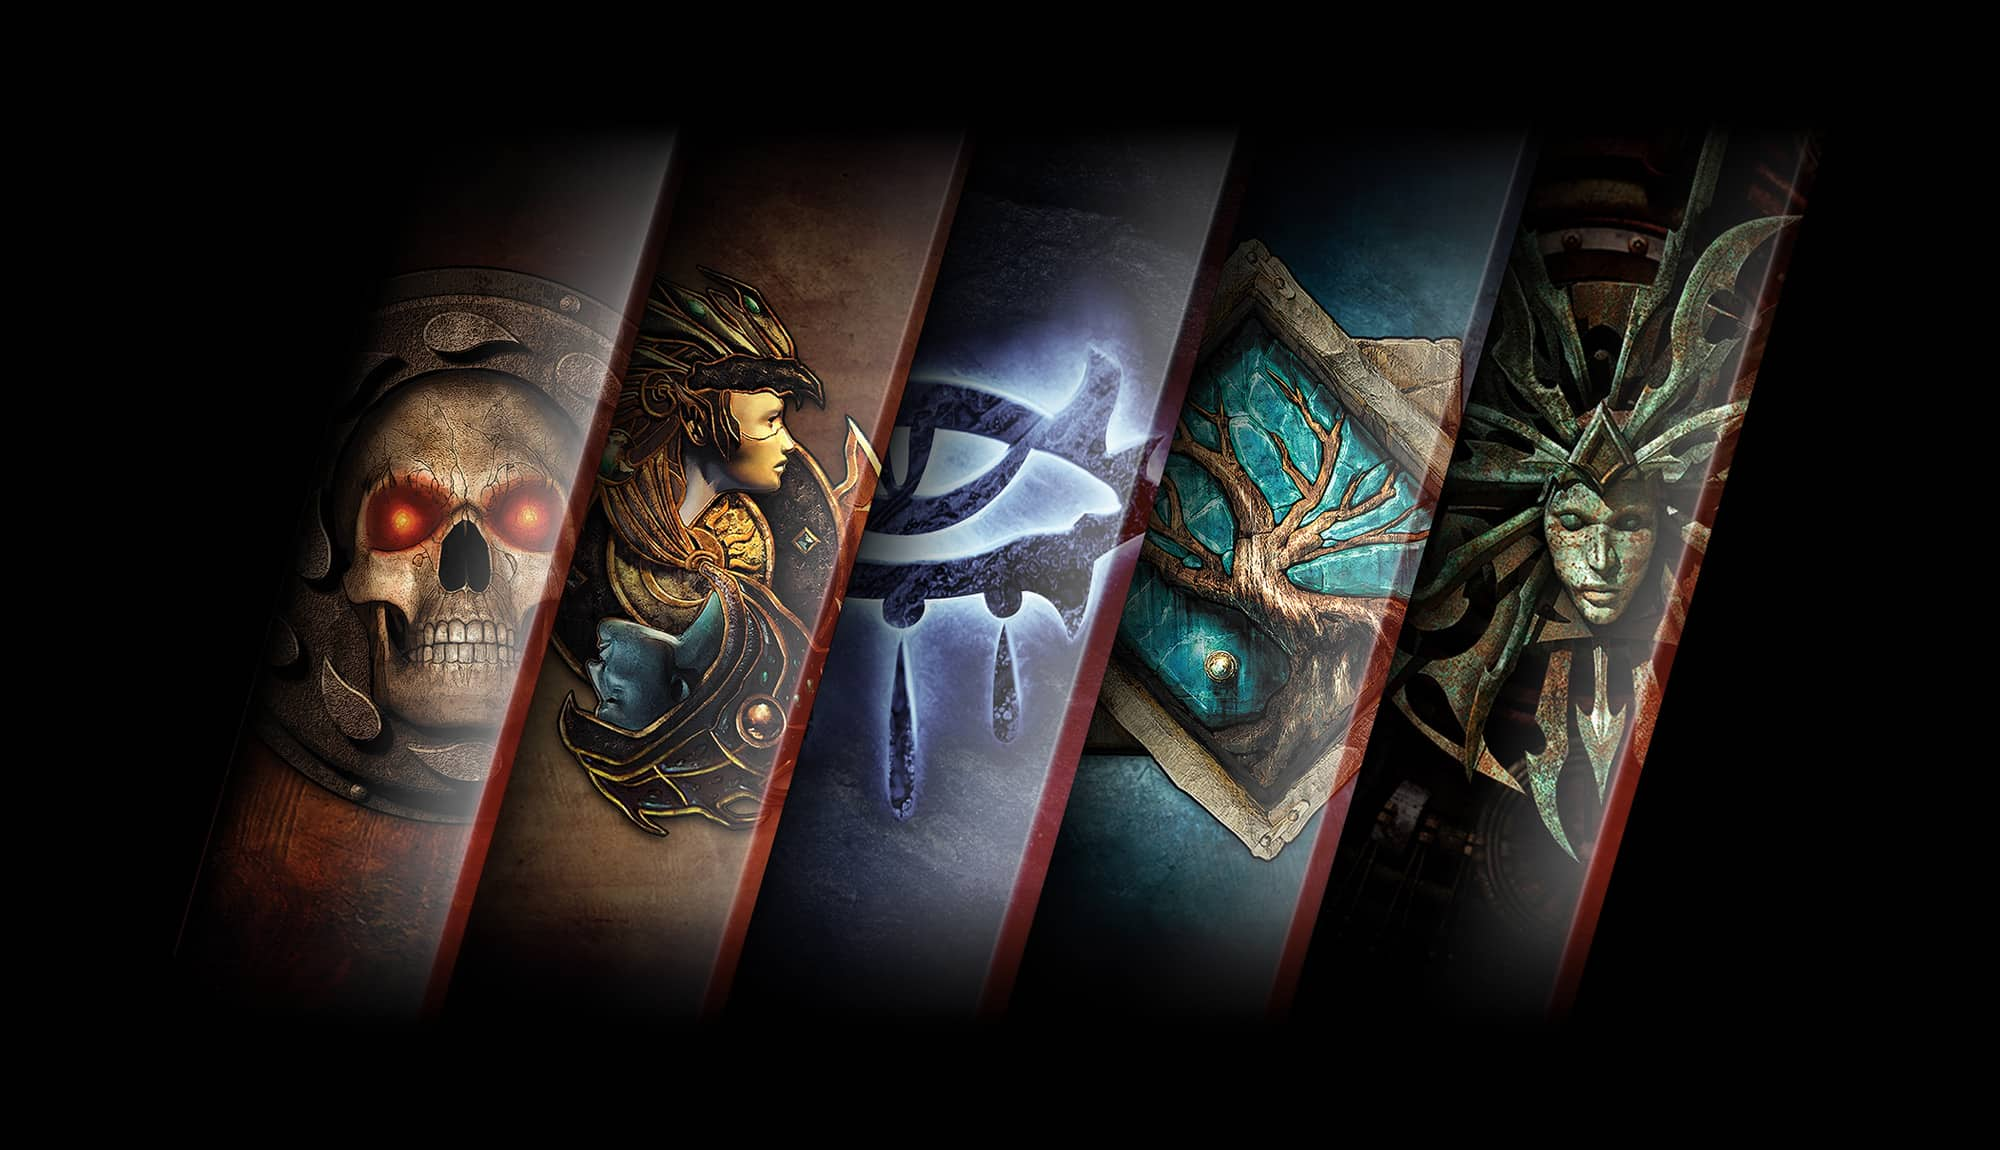 Baldur's Gate, Neverwinter Nights And More D&D Classics Coming To Switch